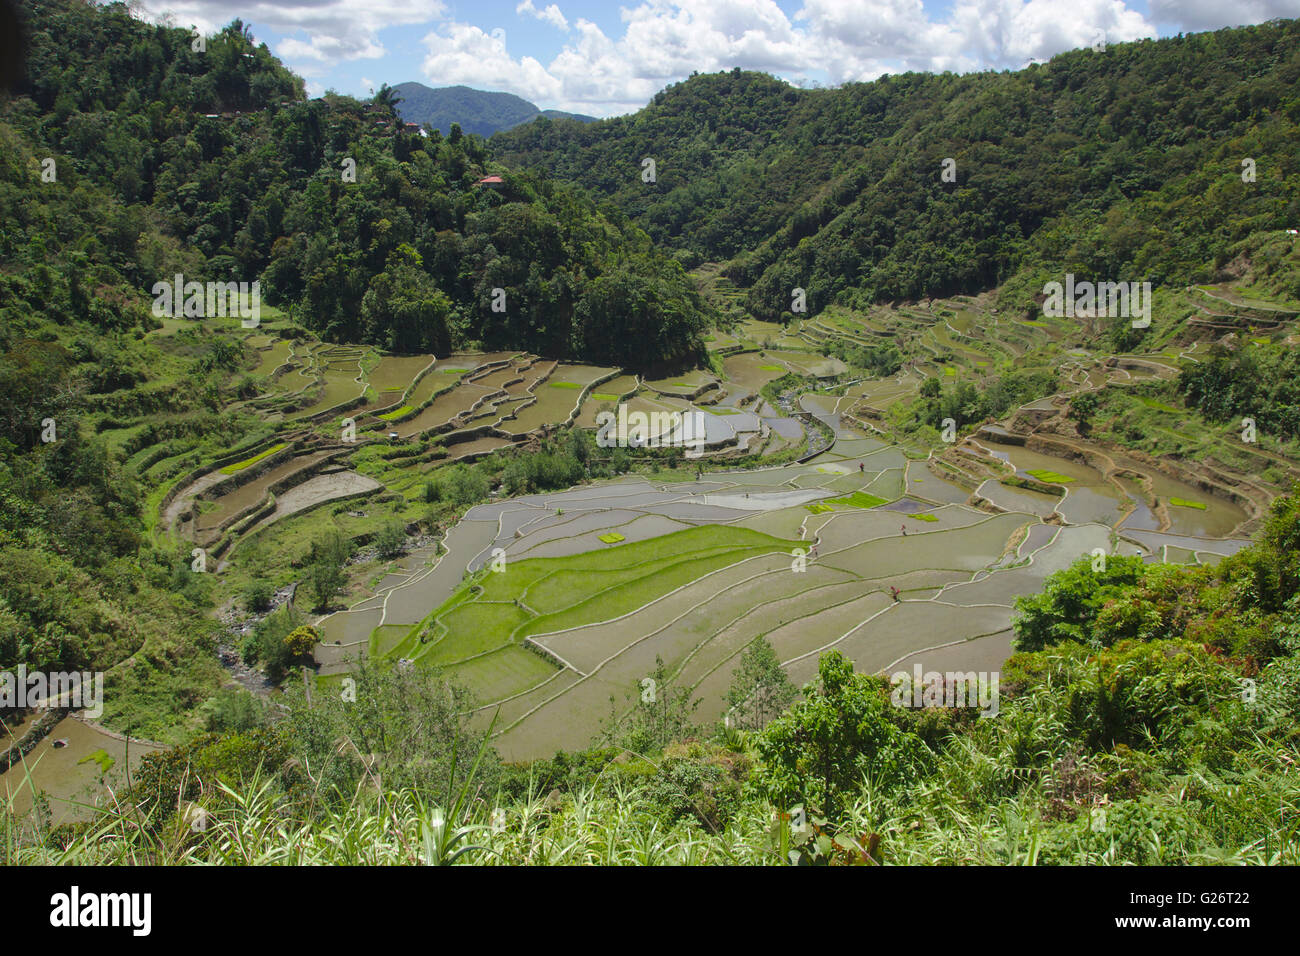 Ifugao rice terraces east of Banaue, Luzon, Philippines - Stock Image